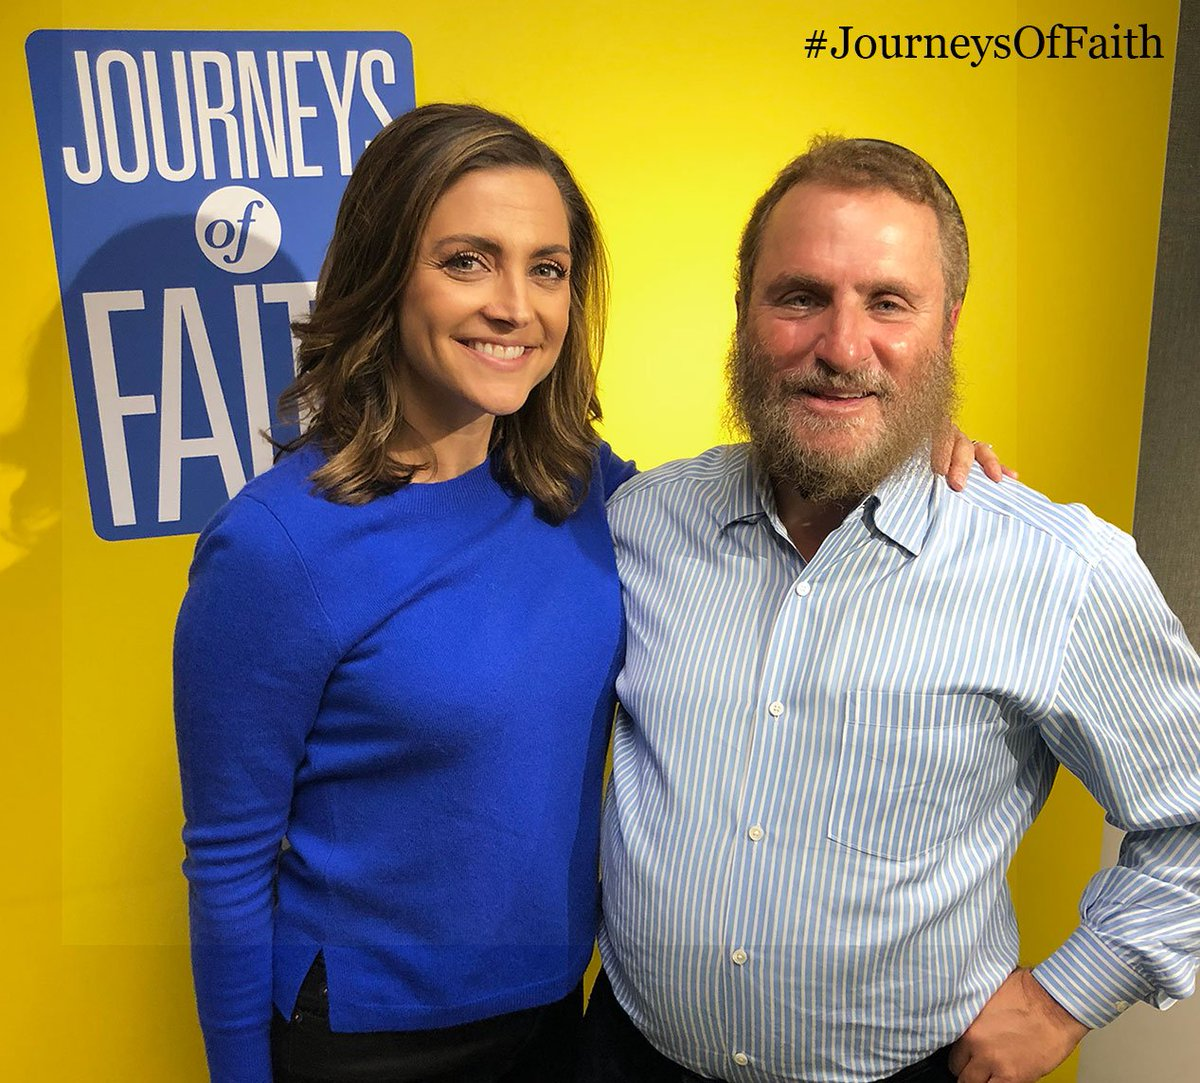 This week on #JourneysOfFaith with @paulafaris, @RabbiShmuley shares the definitive moment in his childhood that convinced him to become a rabbi. http://apple.co/2Ot64OQ